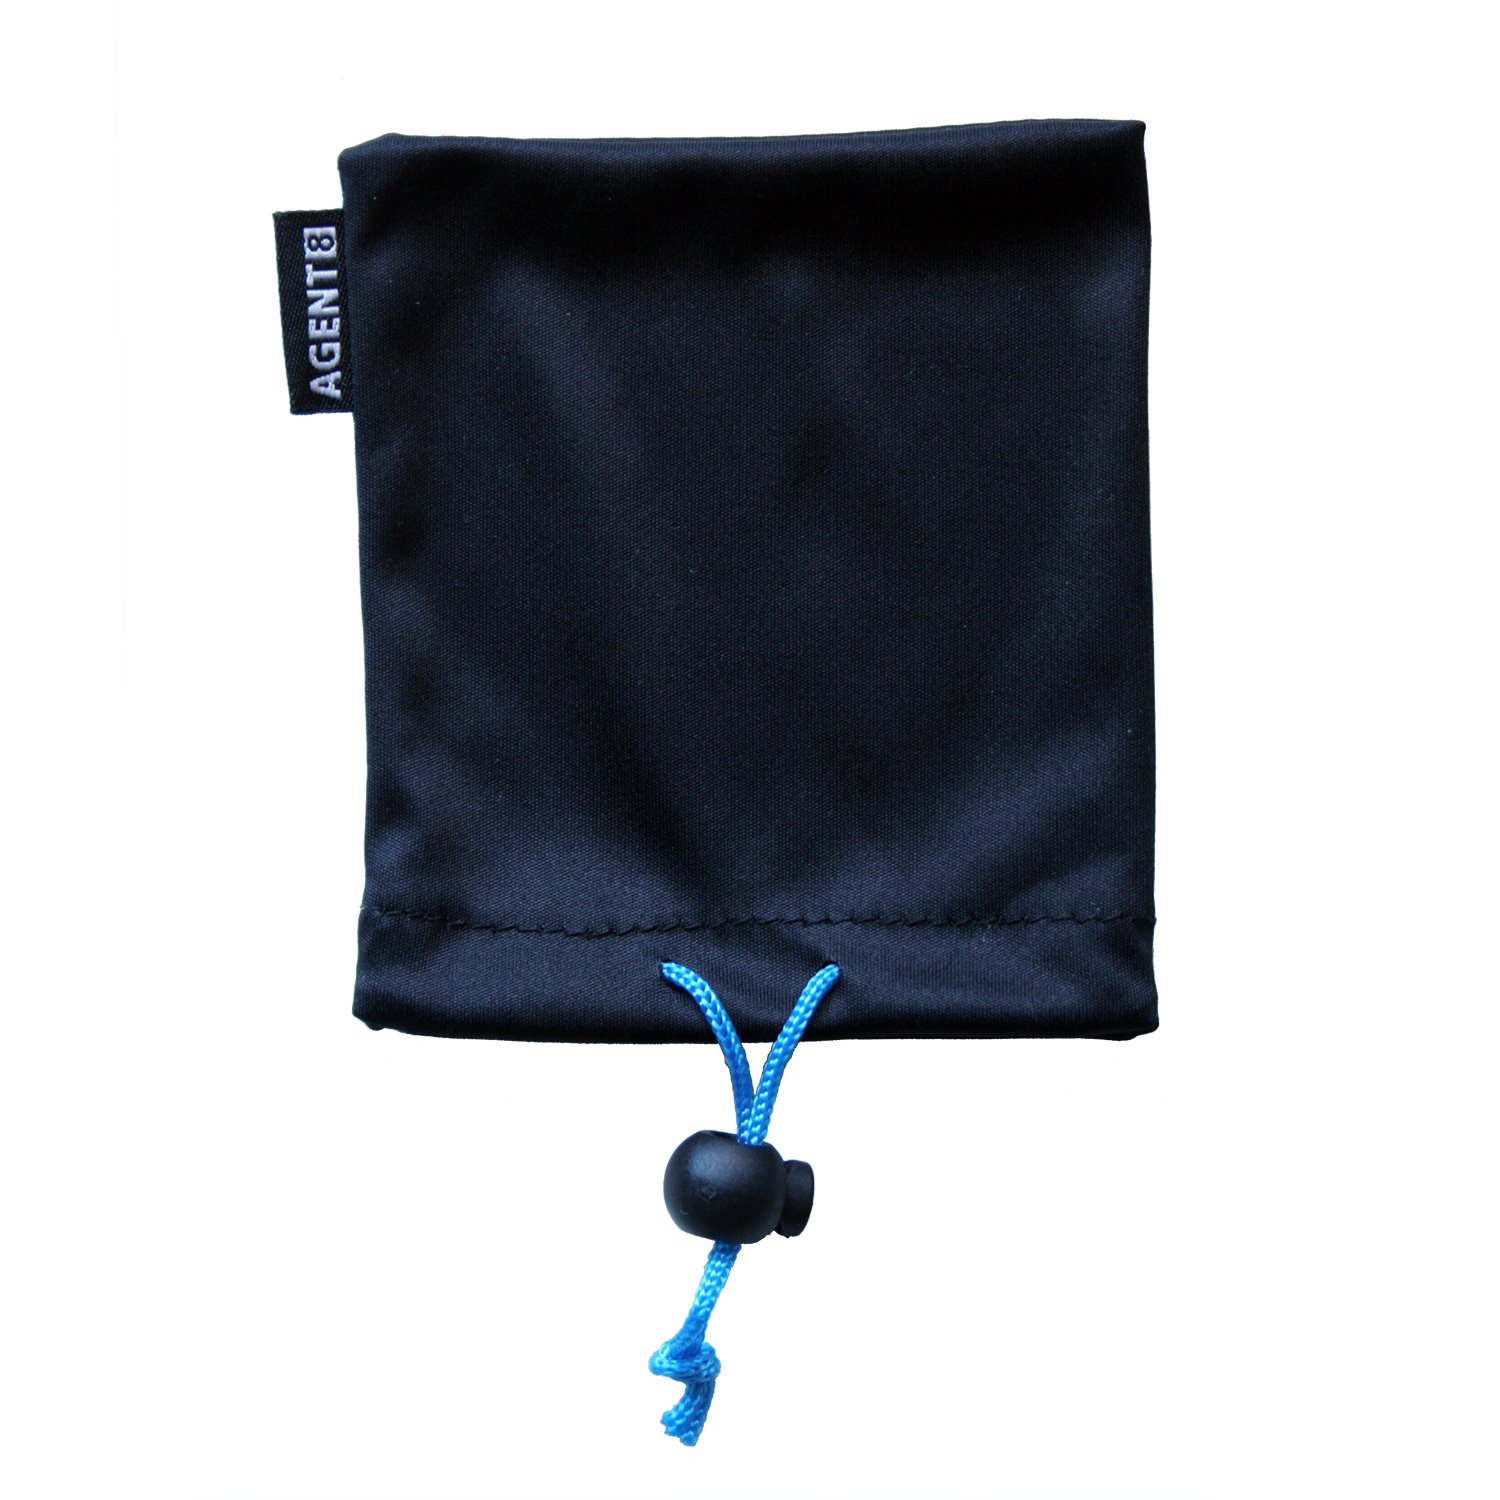 AGENT 8 Microfiber Soft Cleaning & Protective Storage Pouch for GoPro Hero [6, 5, 4, 3+, 3, 2, 1]